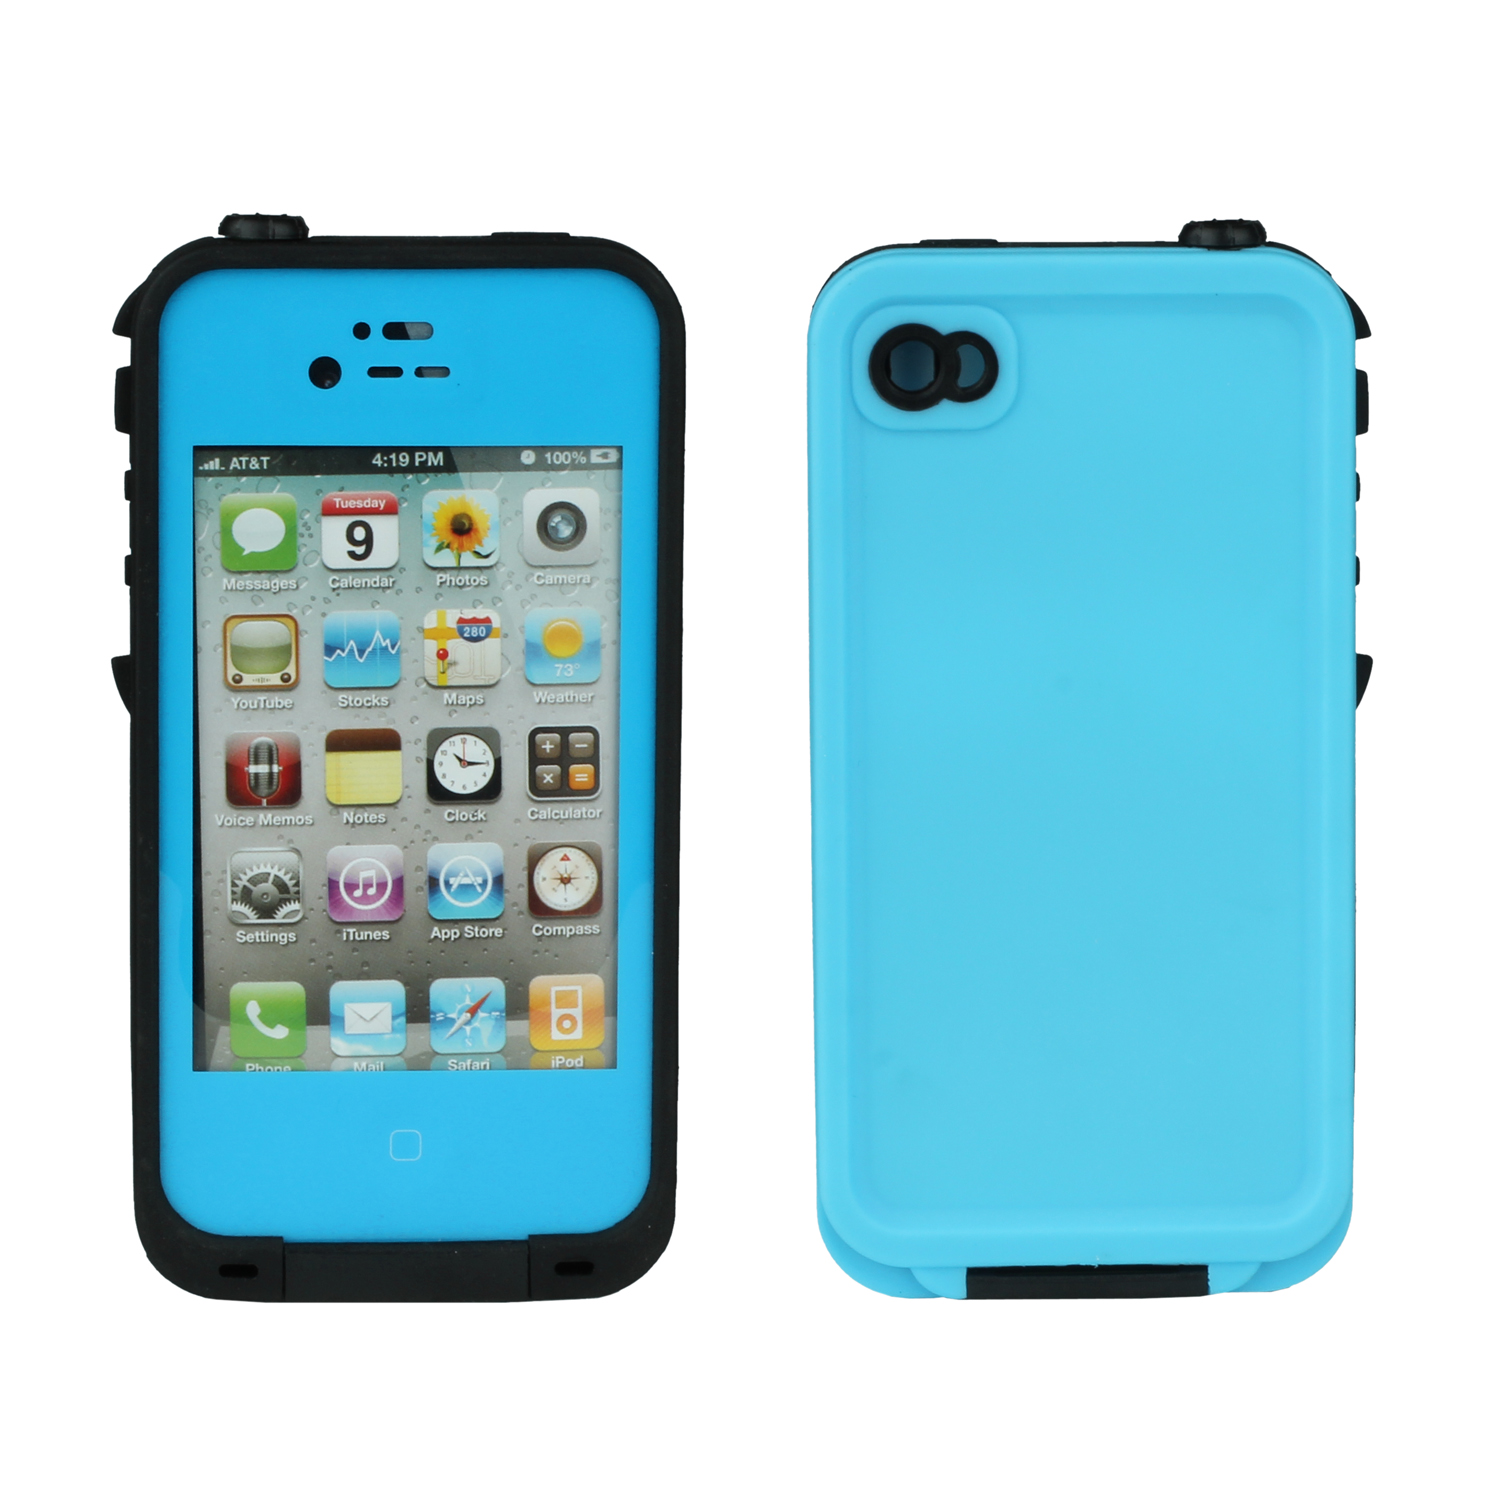 iphone 4s waterproof case pepper waterproof cover for iphone 4s light blue 14459